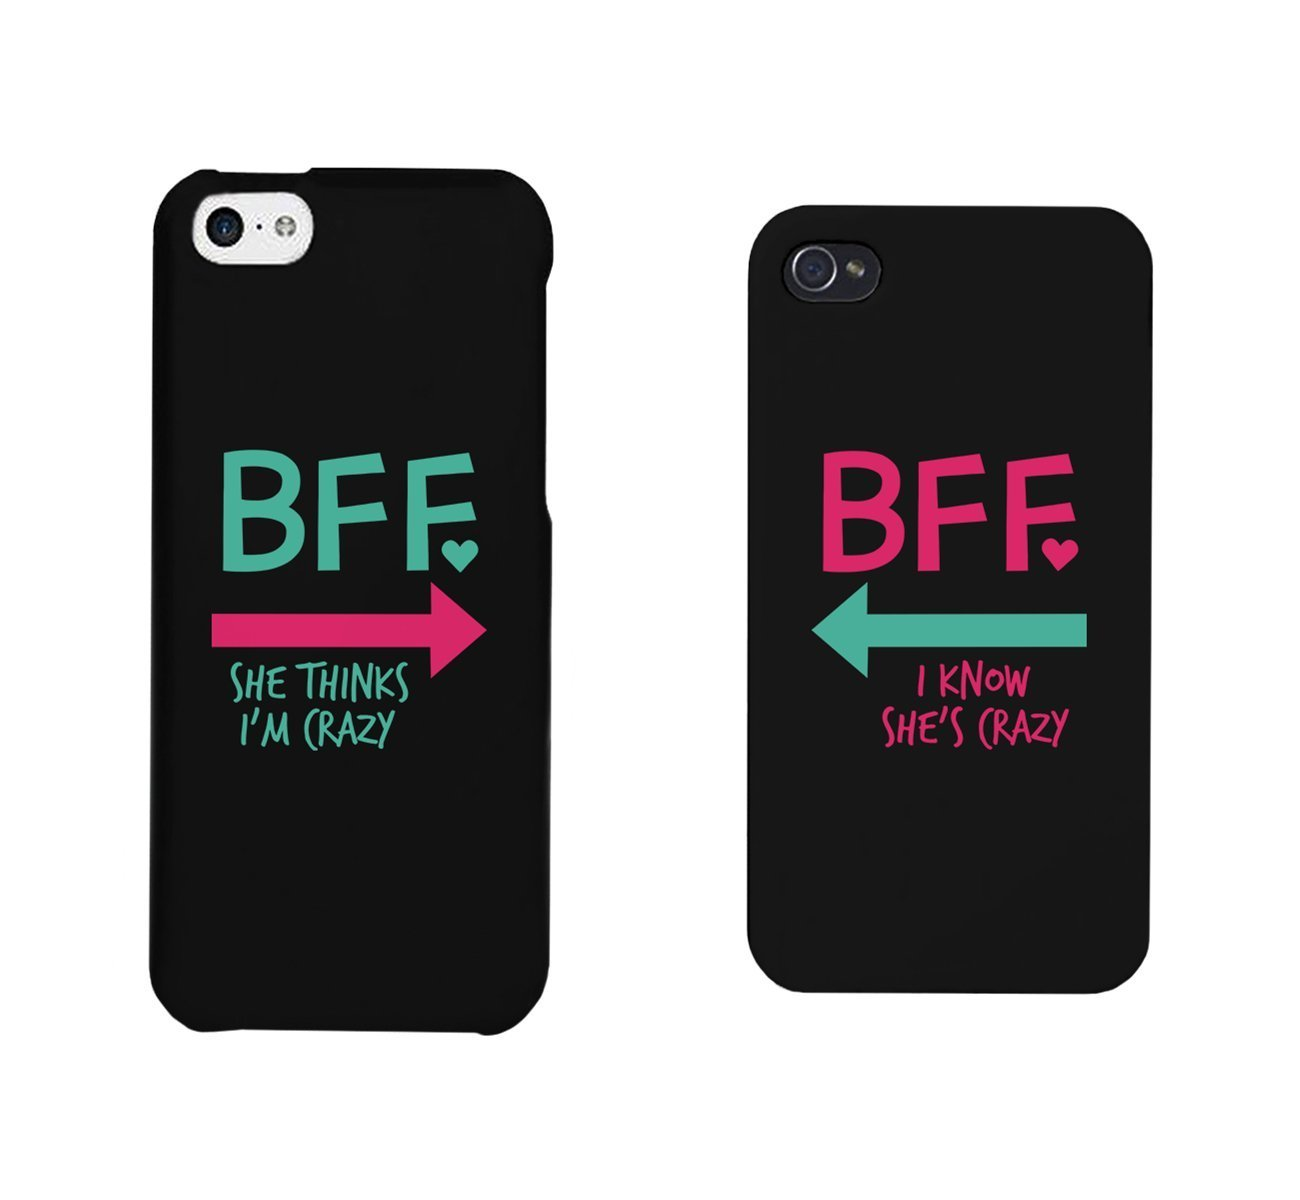 wholesale dealer 00c45 8f370 Funny BFF Phone Cases - Crazy Best Friend Phone Covers for iphone 4, iphone  5, iphone 5C, iphone 6, iphone 6 plus, Galaxy S3, Galaxy S4, Galaxy S5, ...